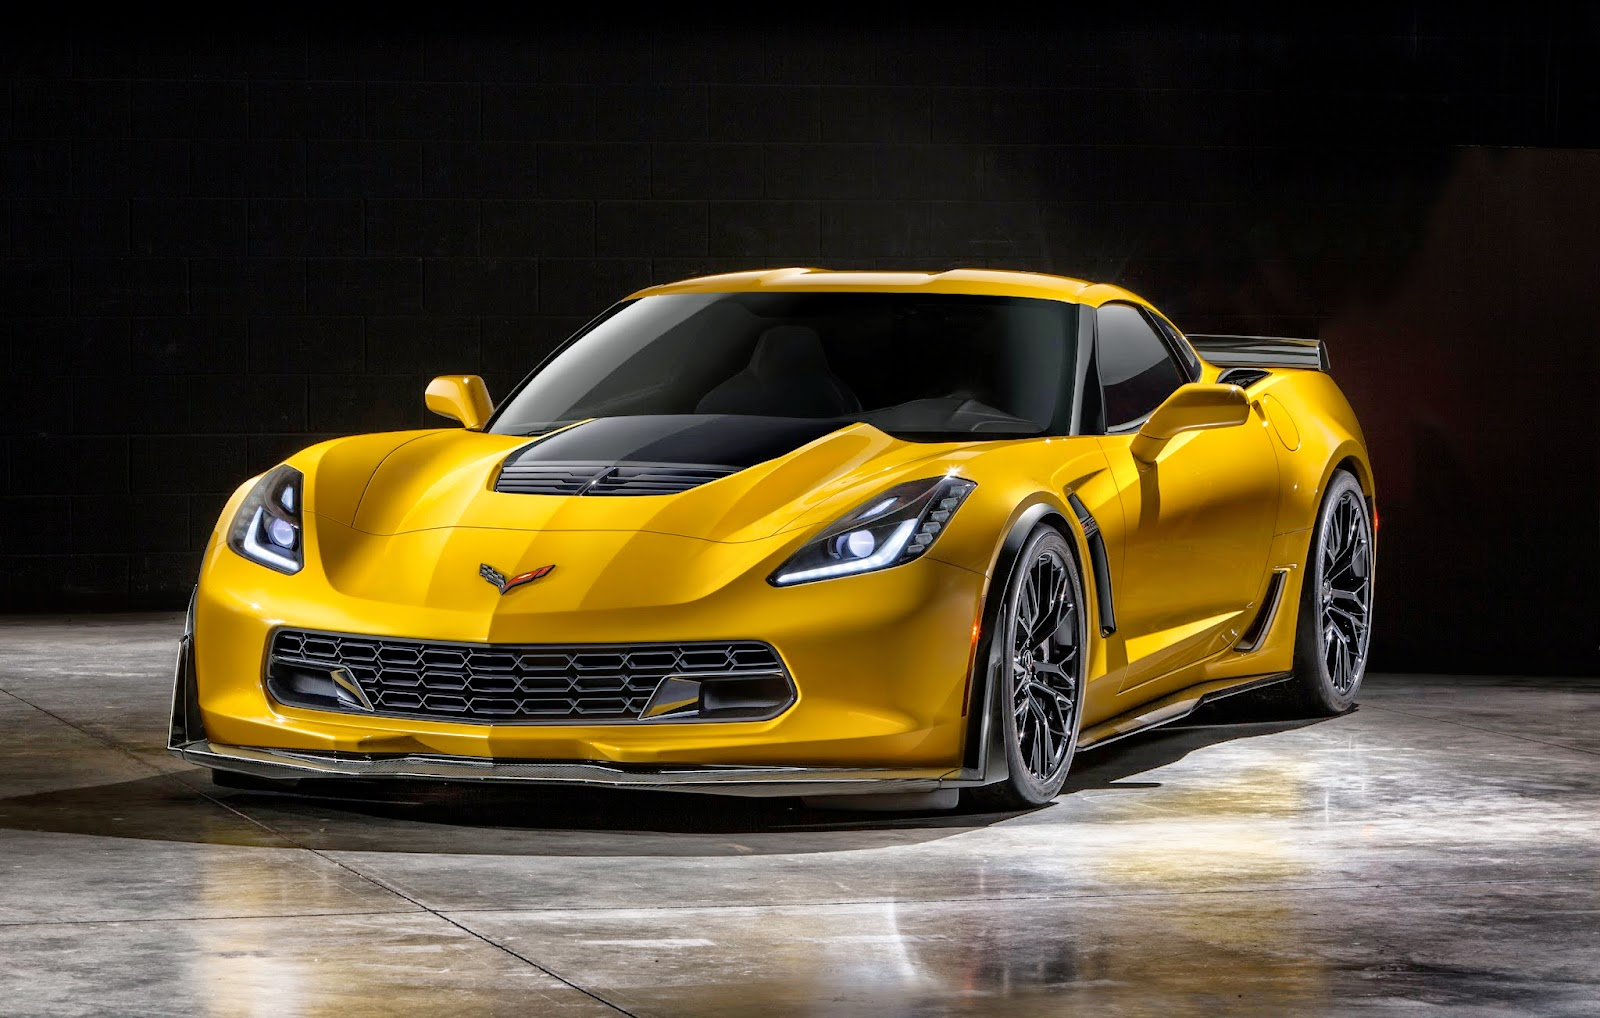 chevrolet corvette z06 son prix en europe. Black Bedroom Furniture Sets. Home Design Ideas